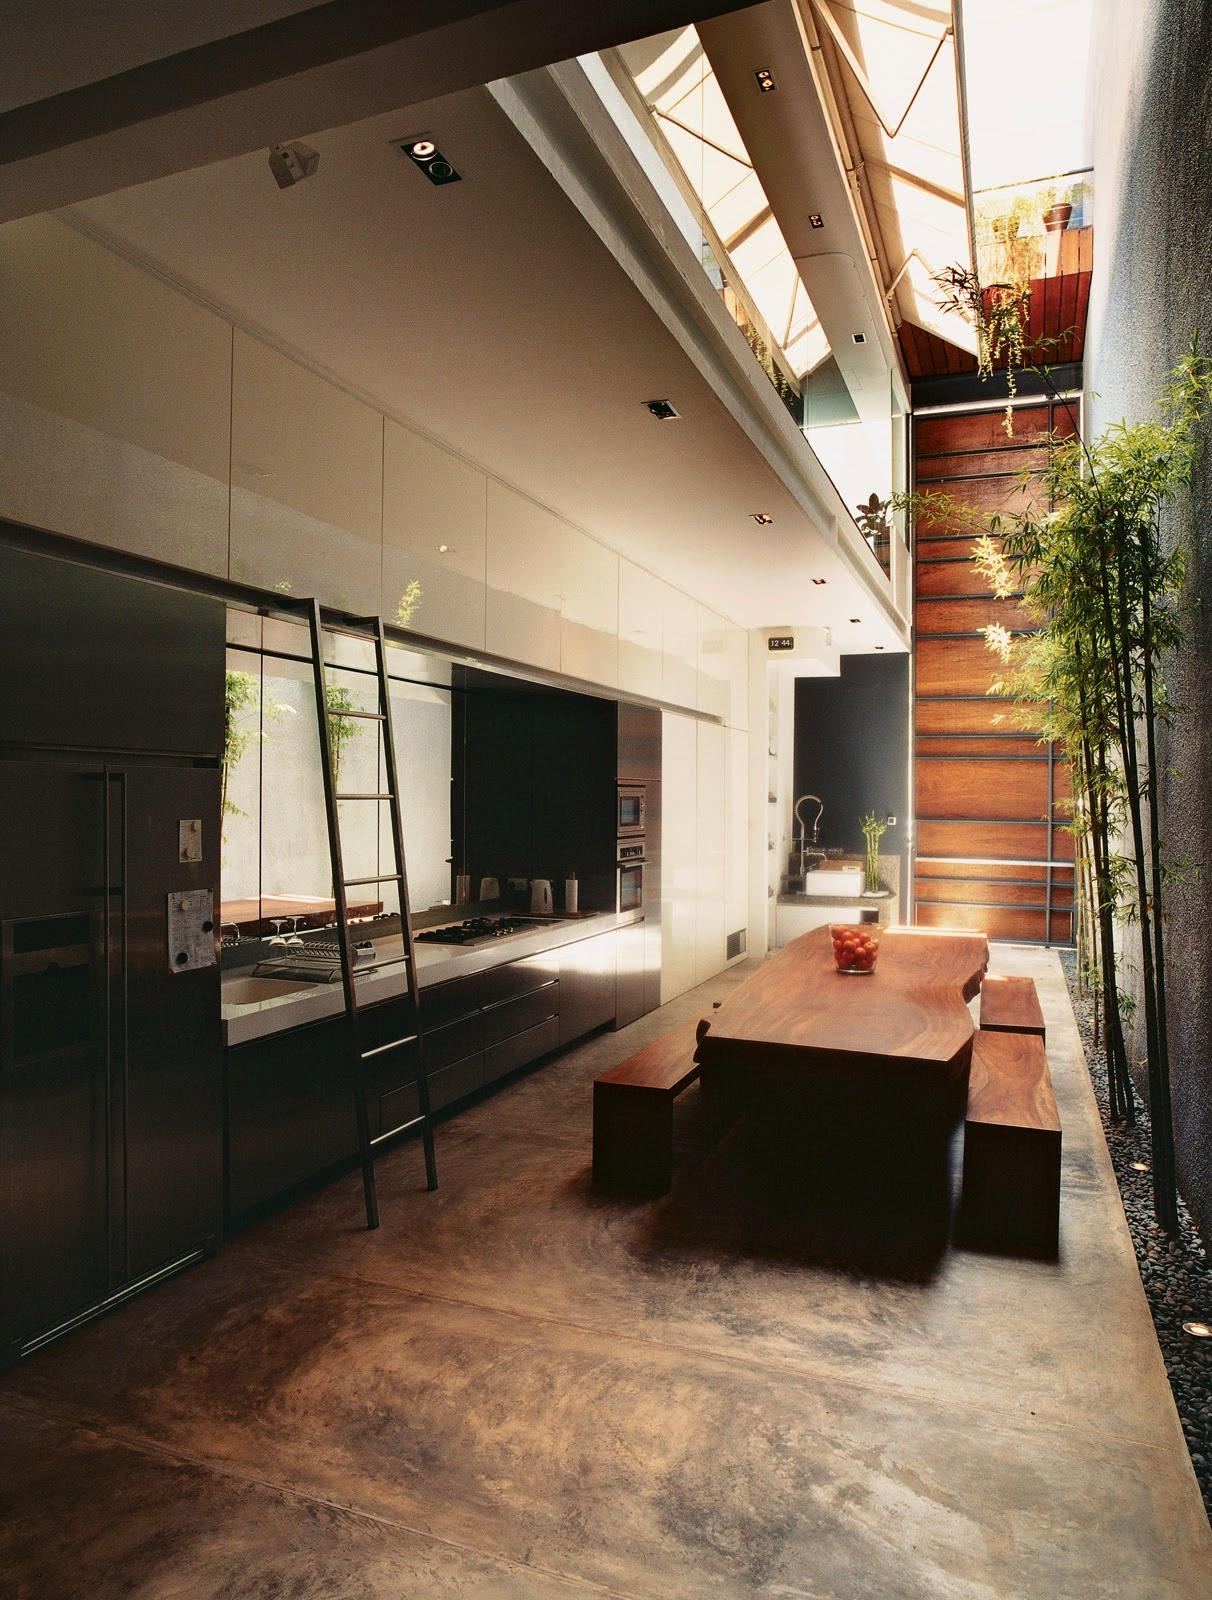 Gorgeous Examples of Zen Home Design | Furniture & Home ...